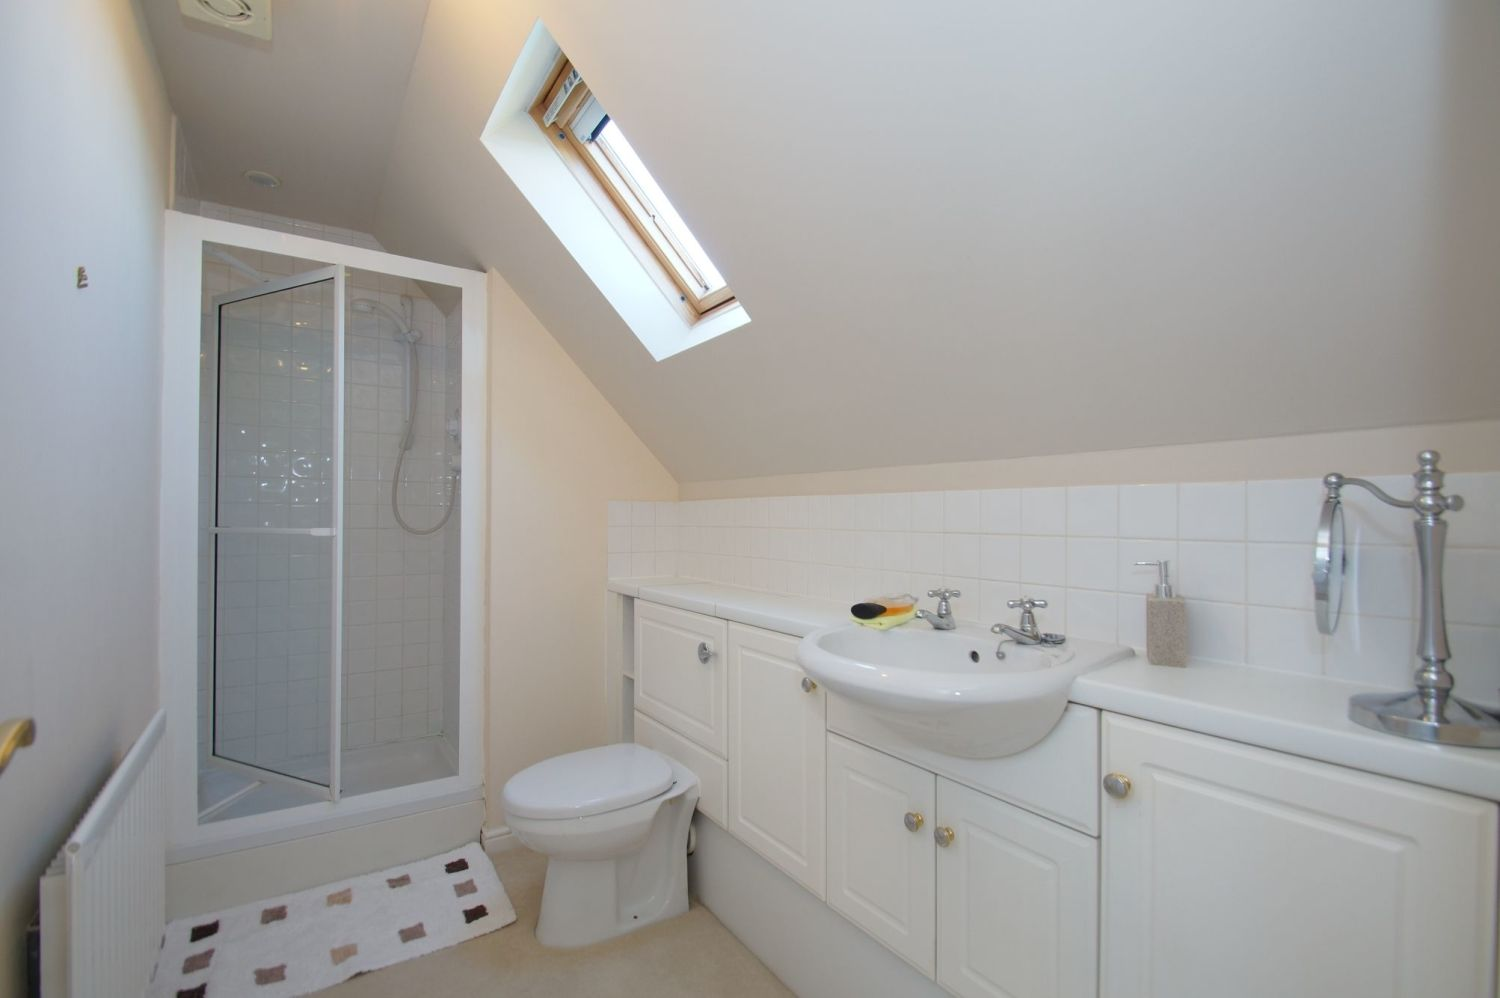 4 bed detached for sale in Acre Lane, Webheath  - Property Image 13